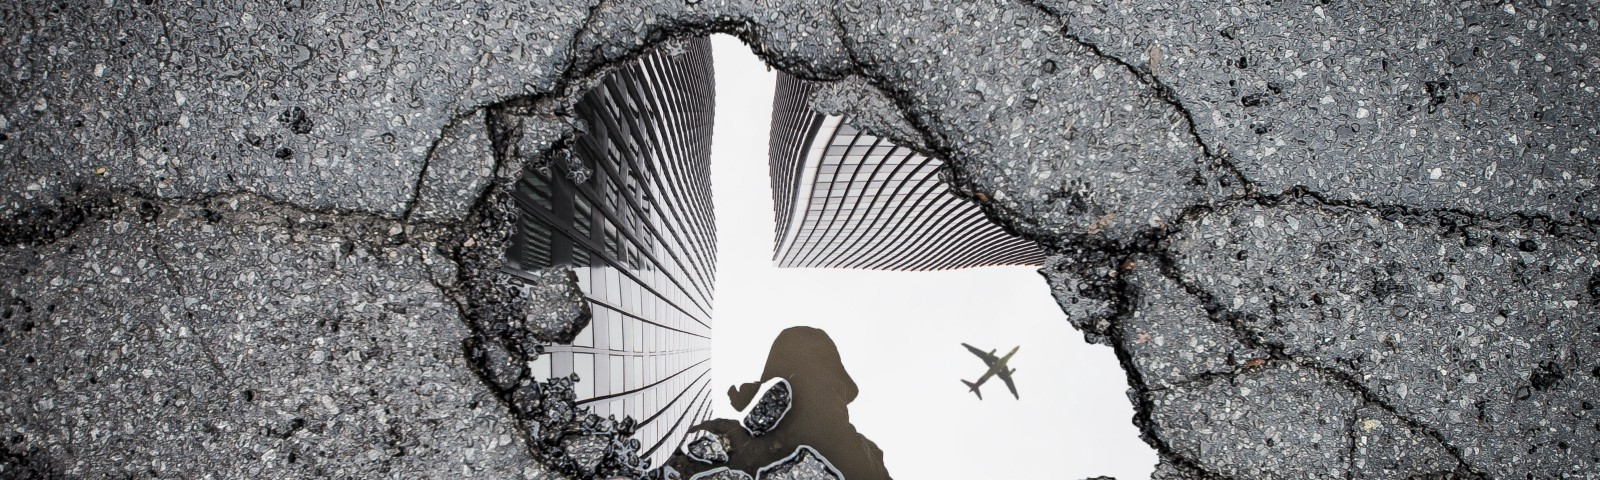 Image of a puddle reflecting skyscrapers and an airplane